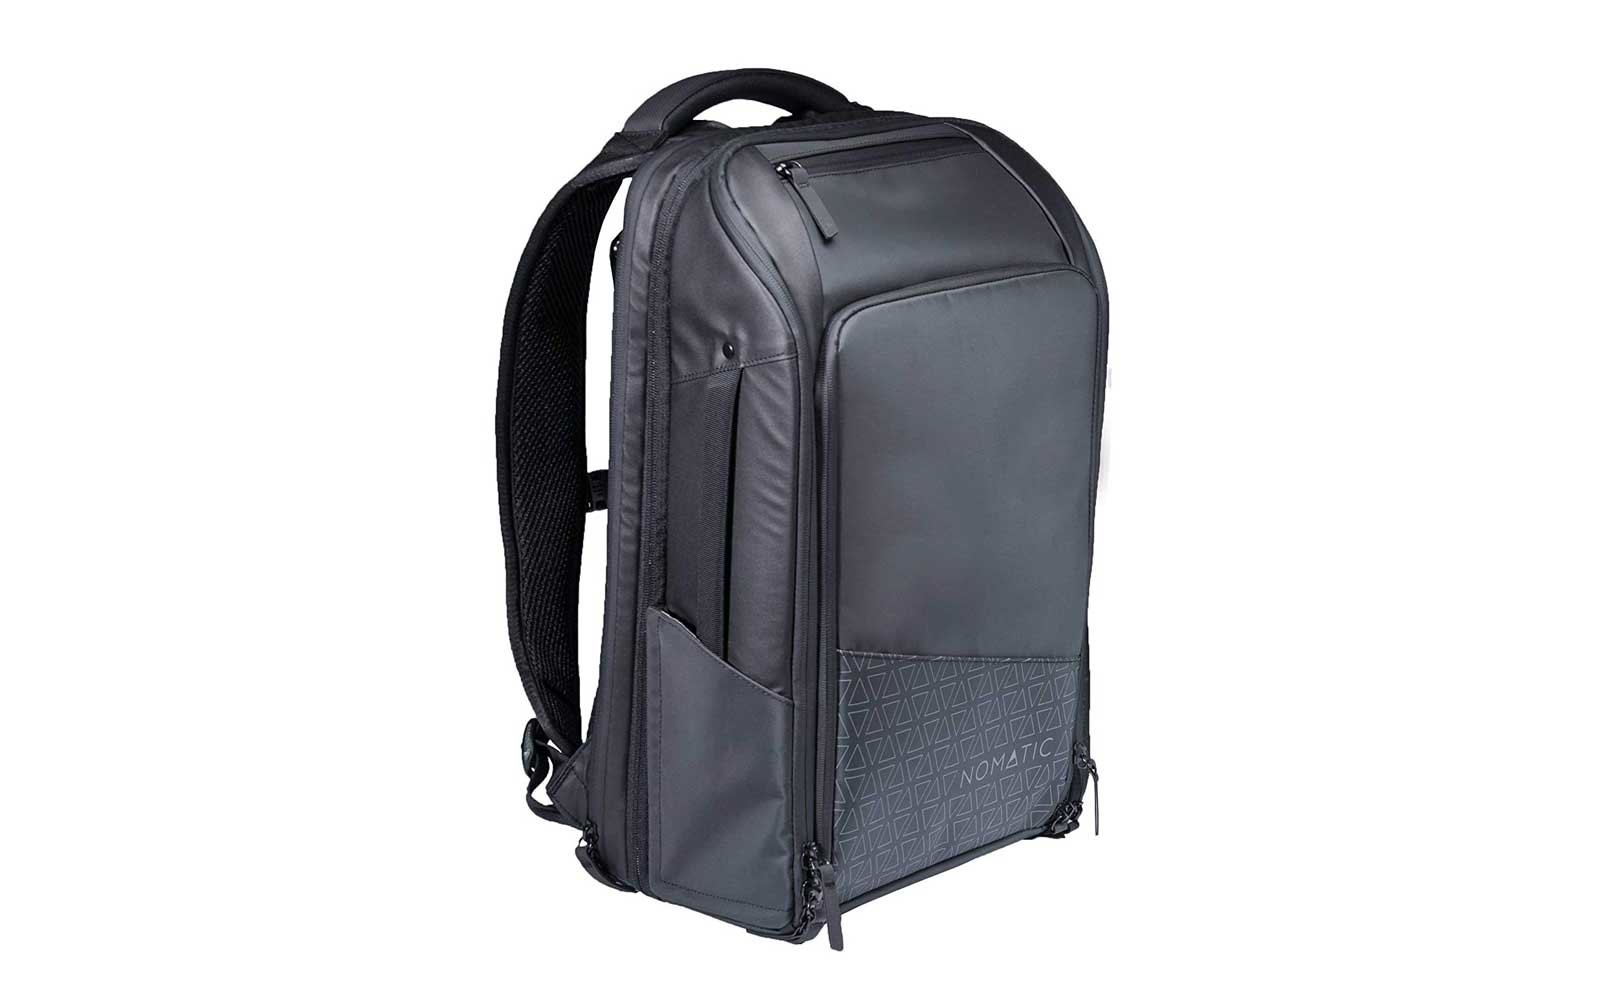 Best All-in-one Laptop Backpack  Nomatic Travel Pack b9b6d65aa9f17